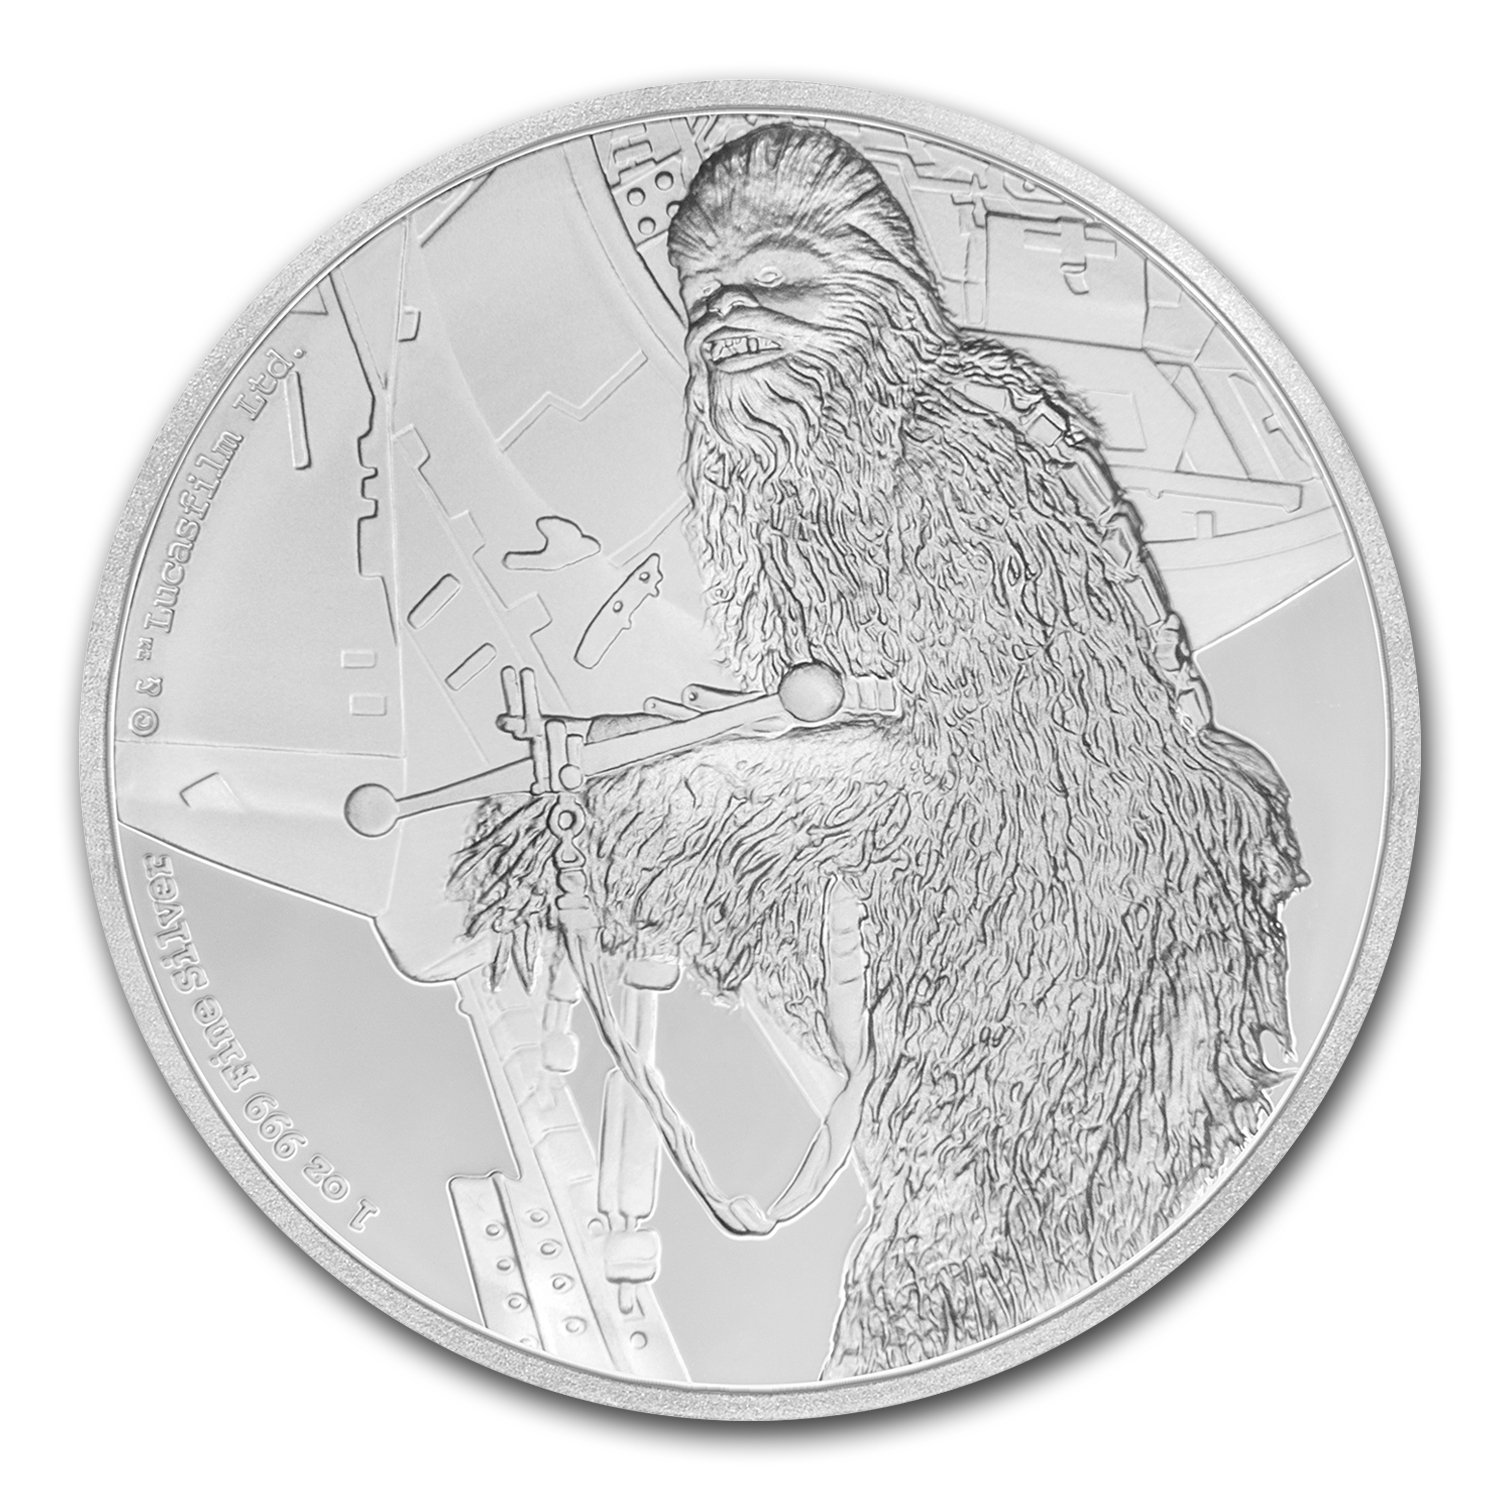 2017 Niue 1 oz Silver $2 Star Wars Chewbacca Proof (w/Box & COA)